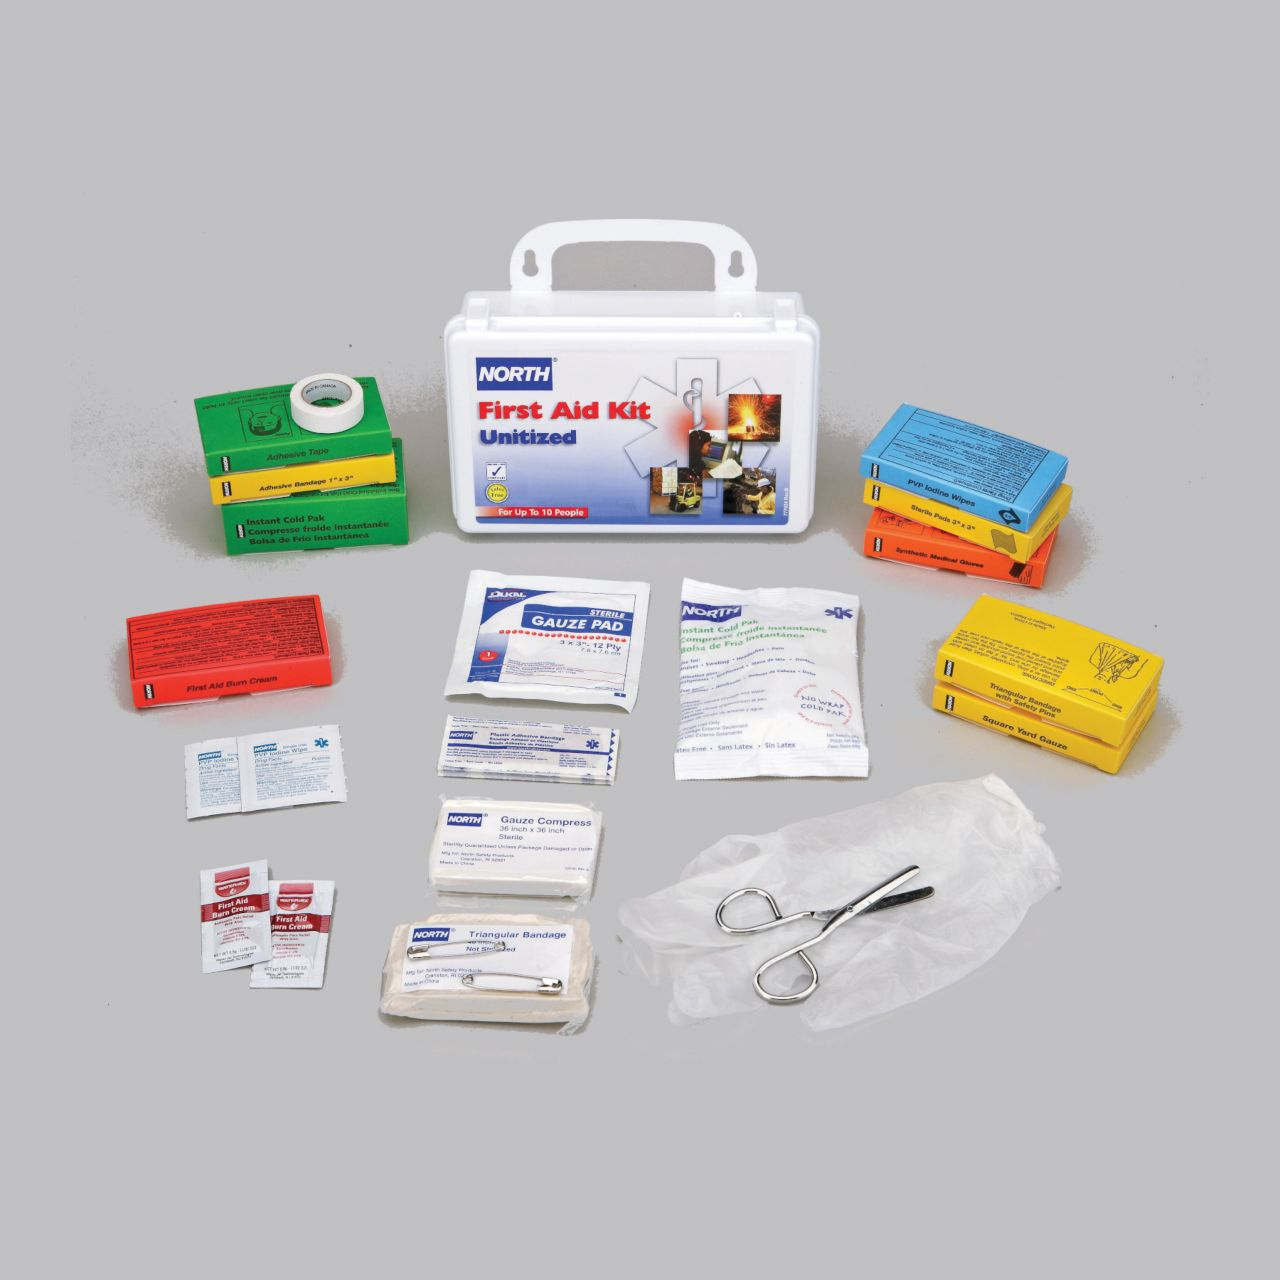 HS_019708-0005l_-_unitized_first_aid_kit,_10_unit,_plastic_north_019708_kit